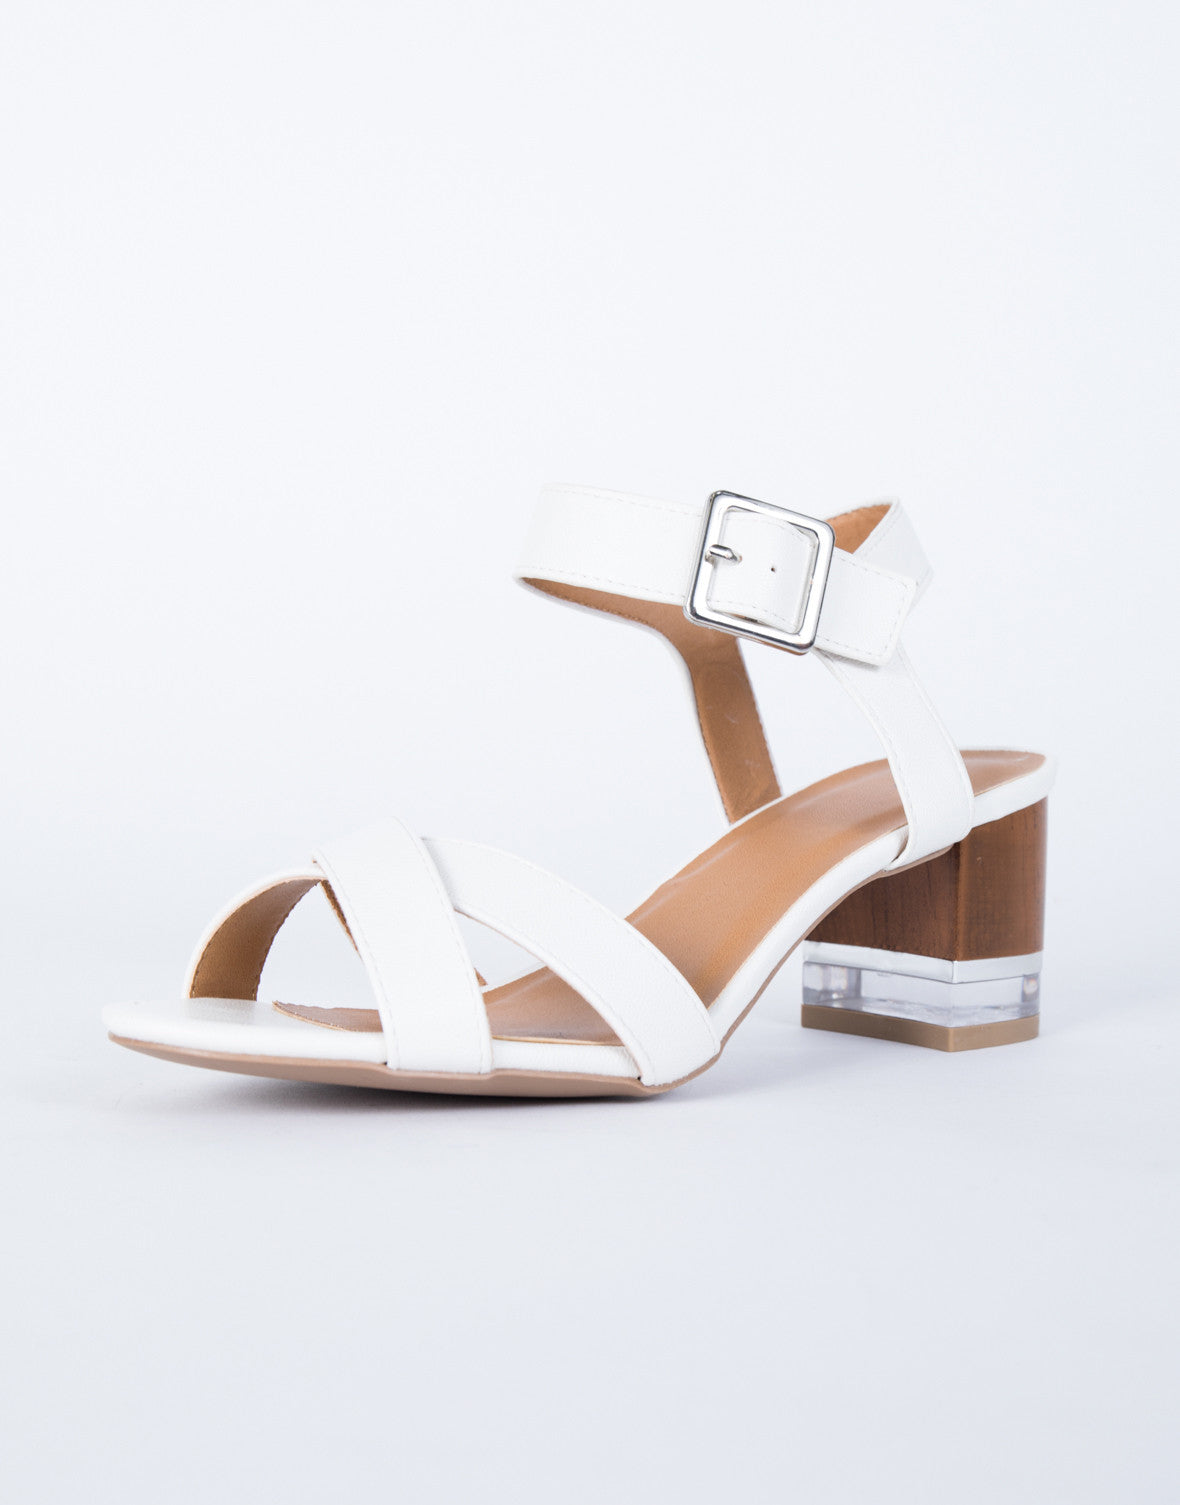 Clearly Wooden Heel Sandals Wooden Heel Sandals Clear Lucite